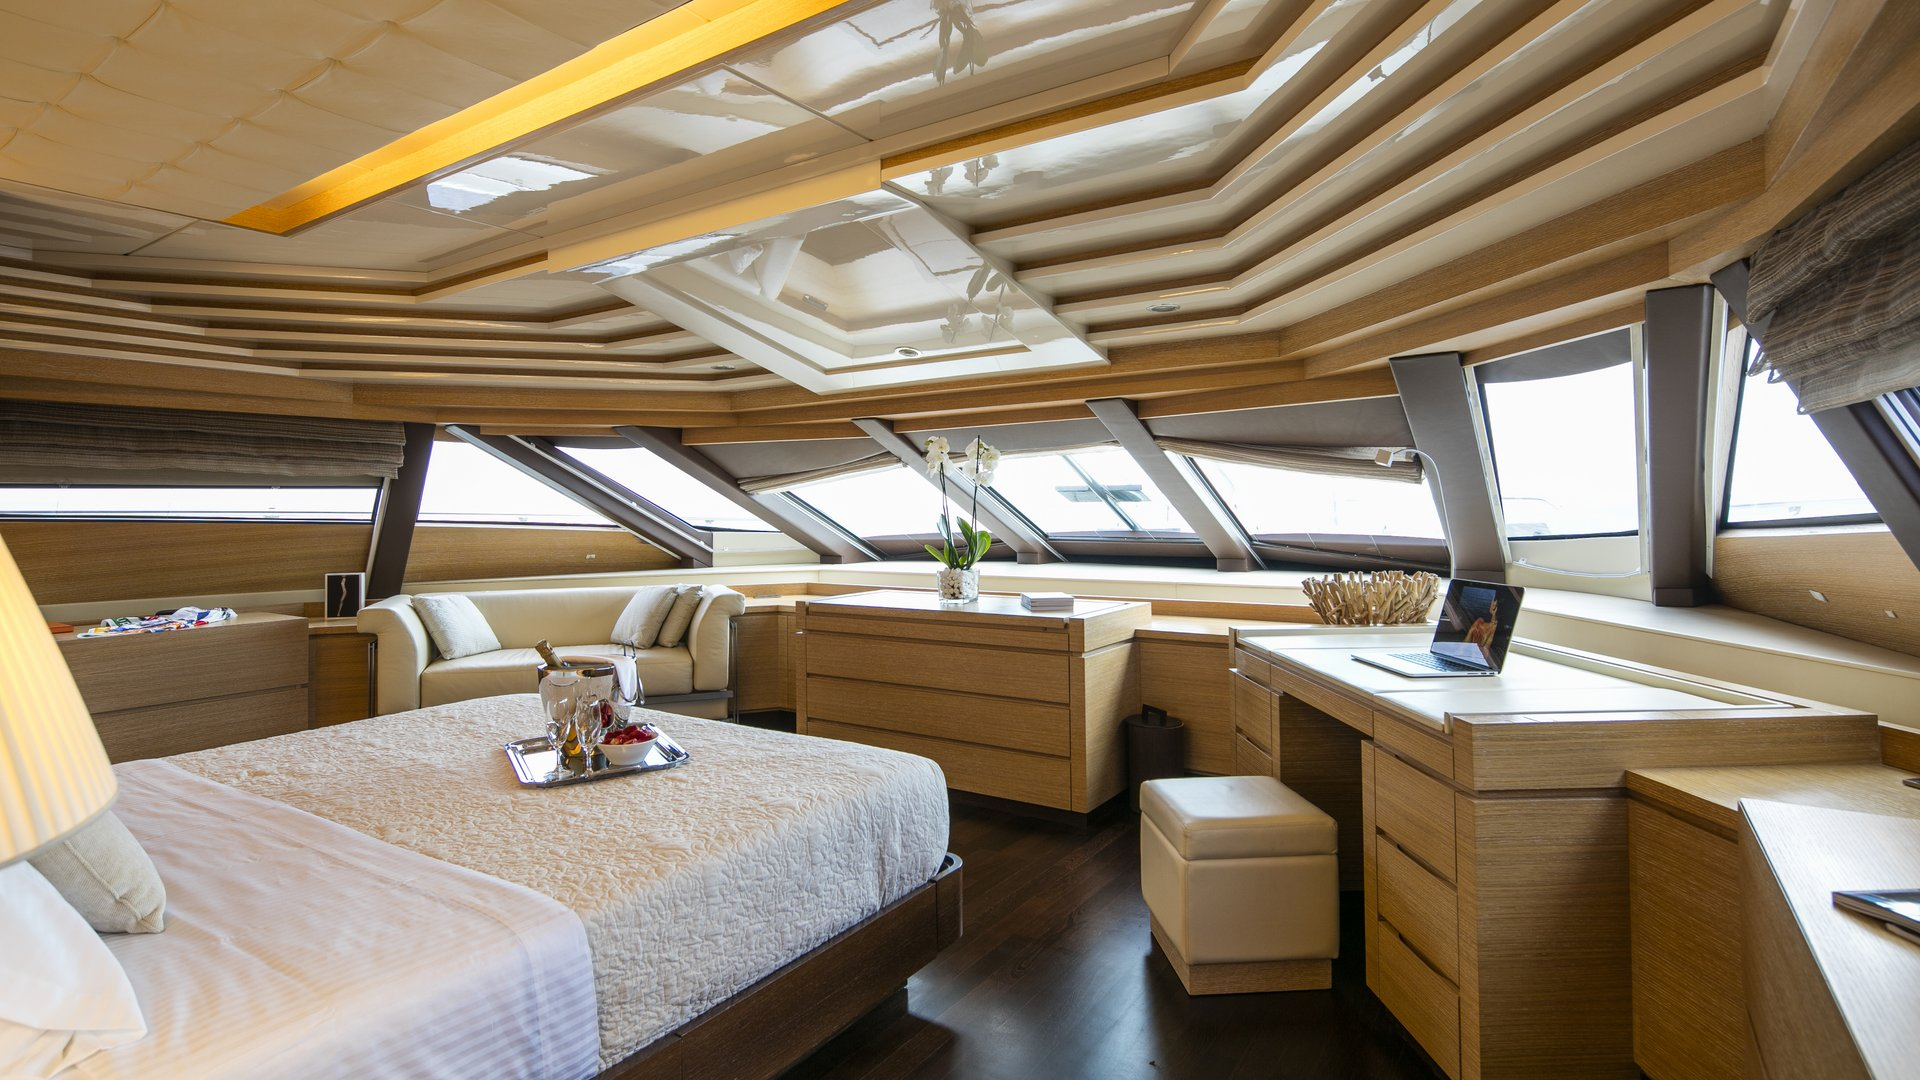 M/Y RINI yacht for charter master bedroom